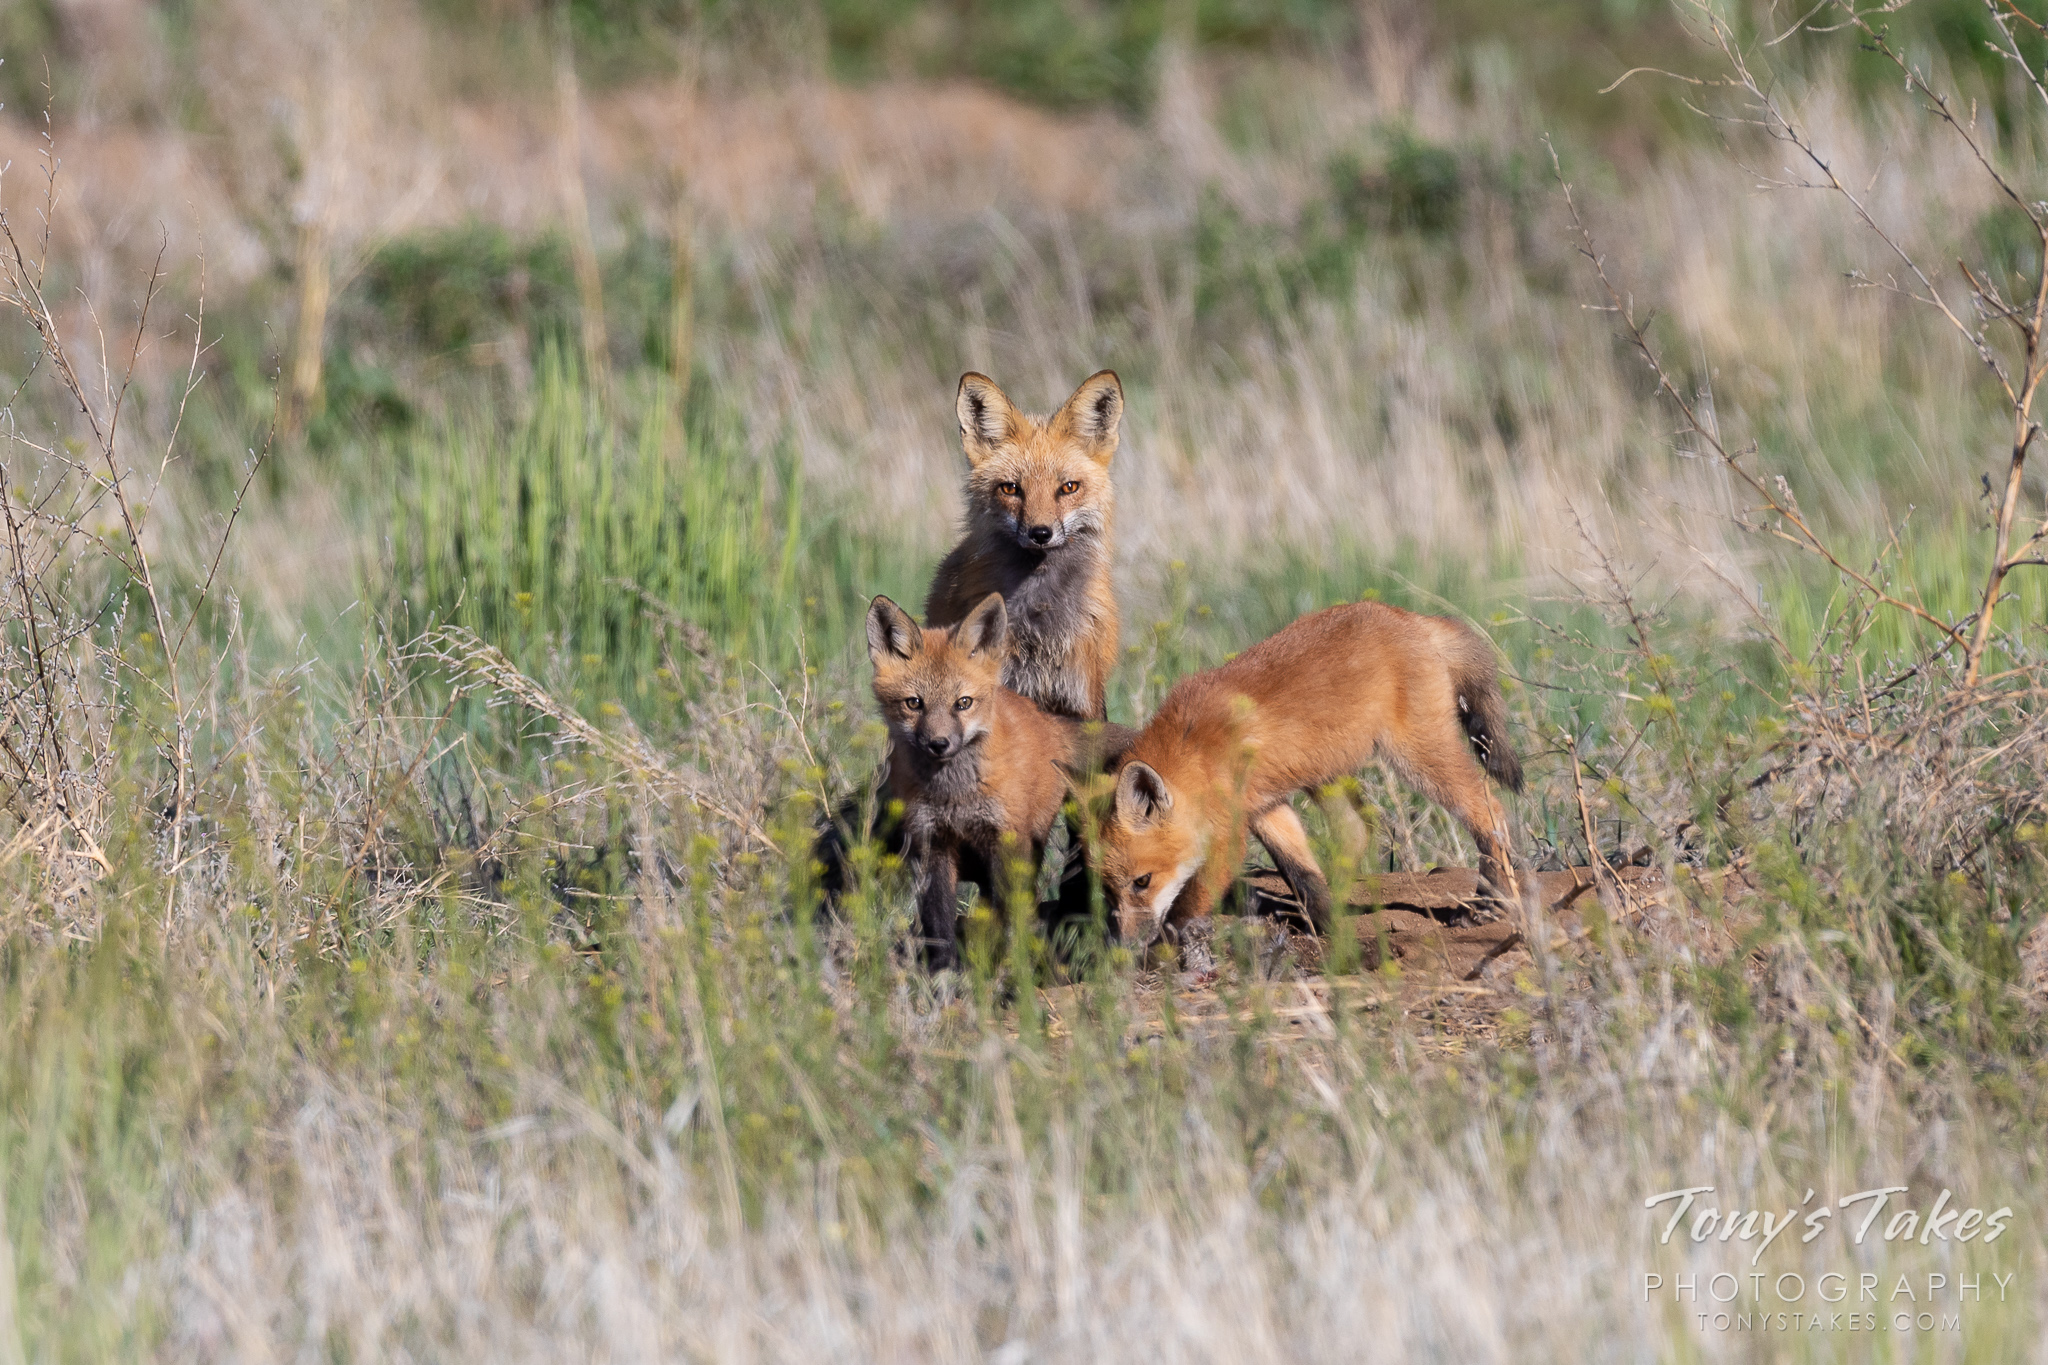 A red fox vixen keeps close watch while her kits explore. (© Tony's Takes)